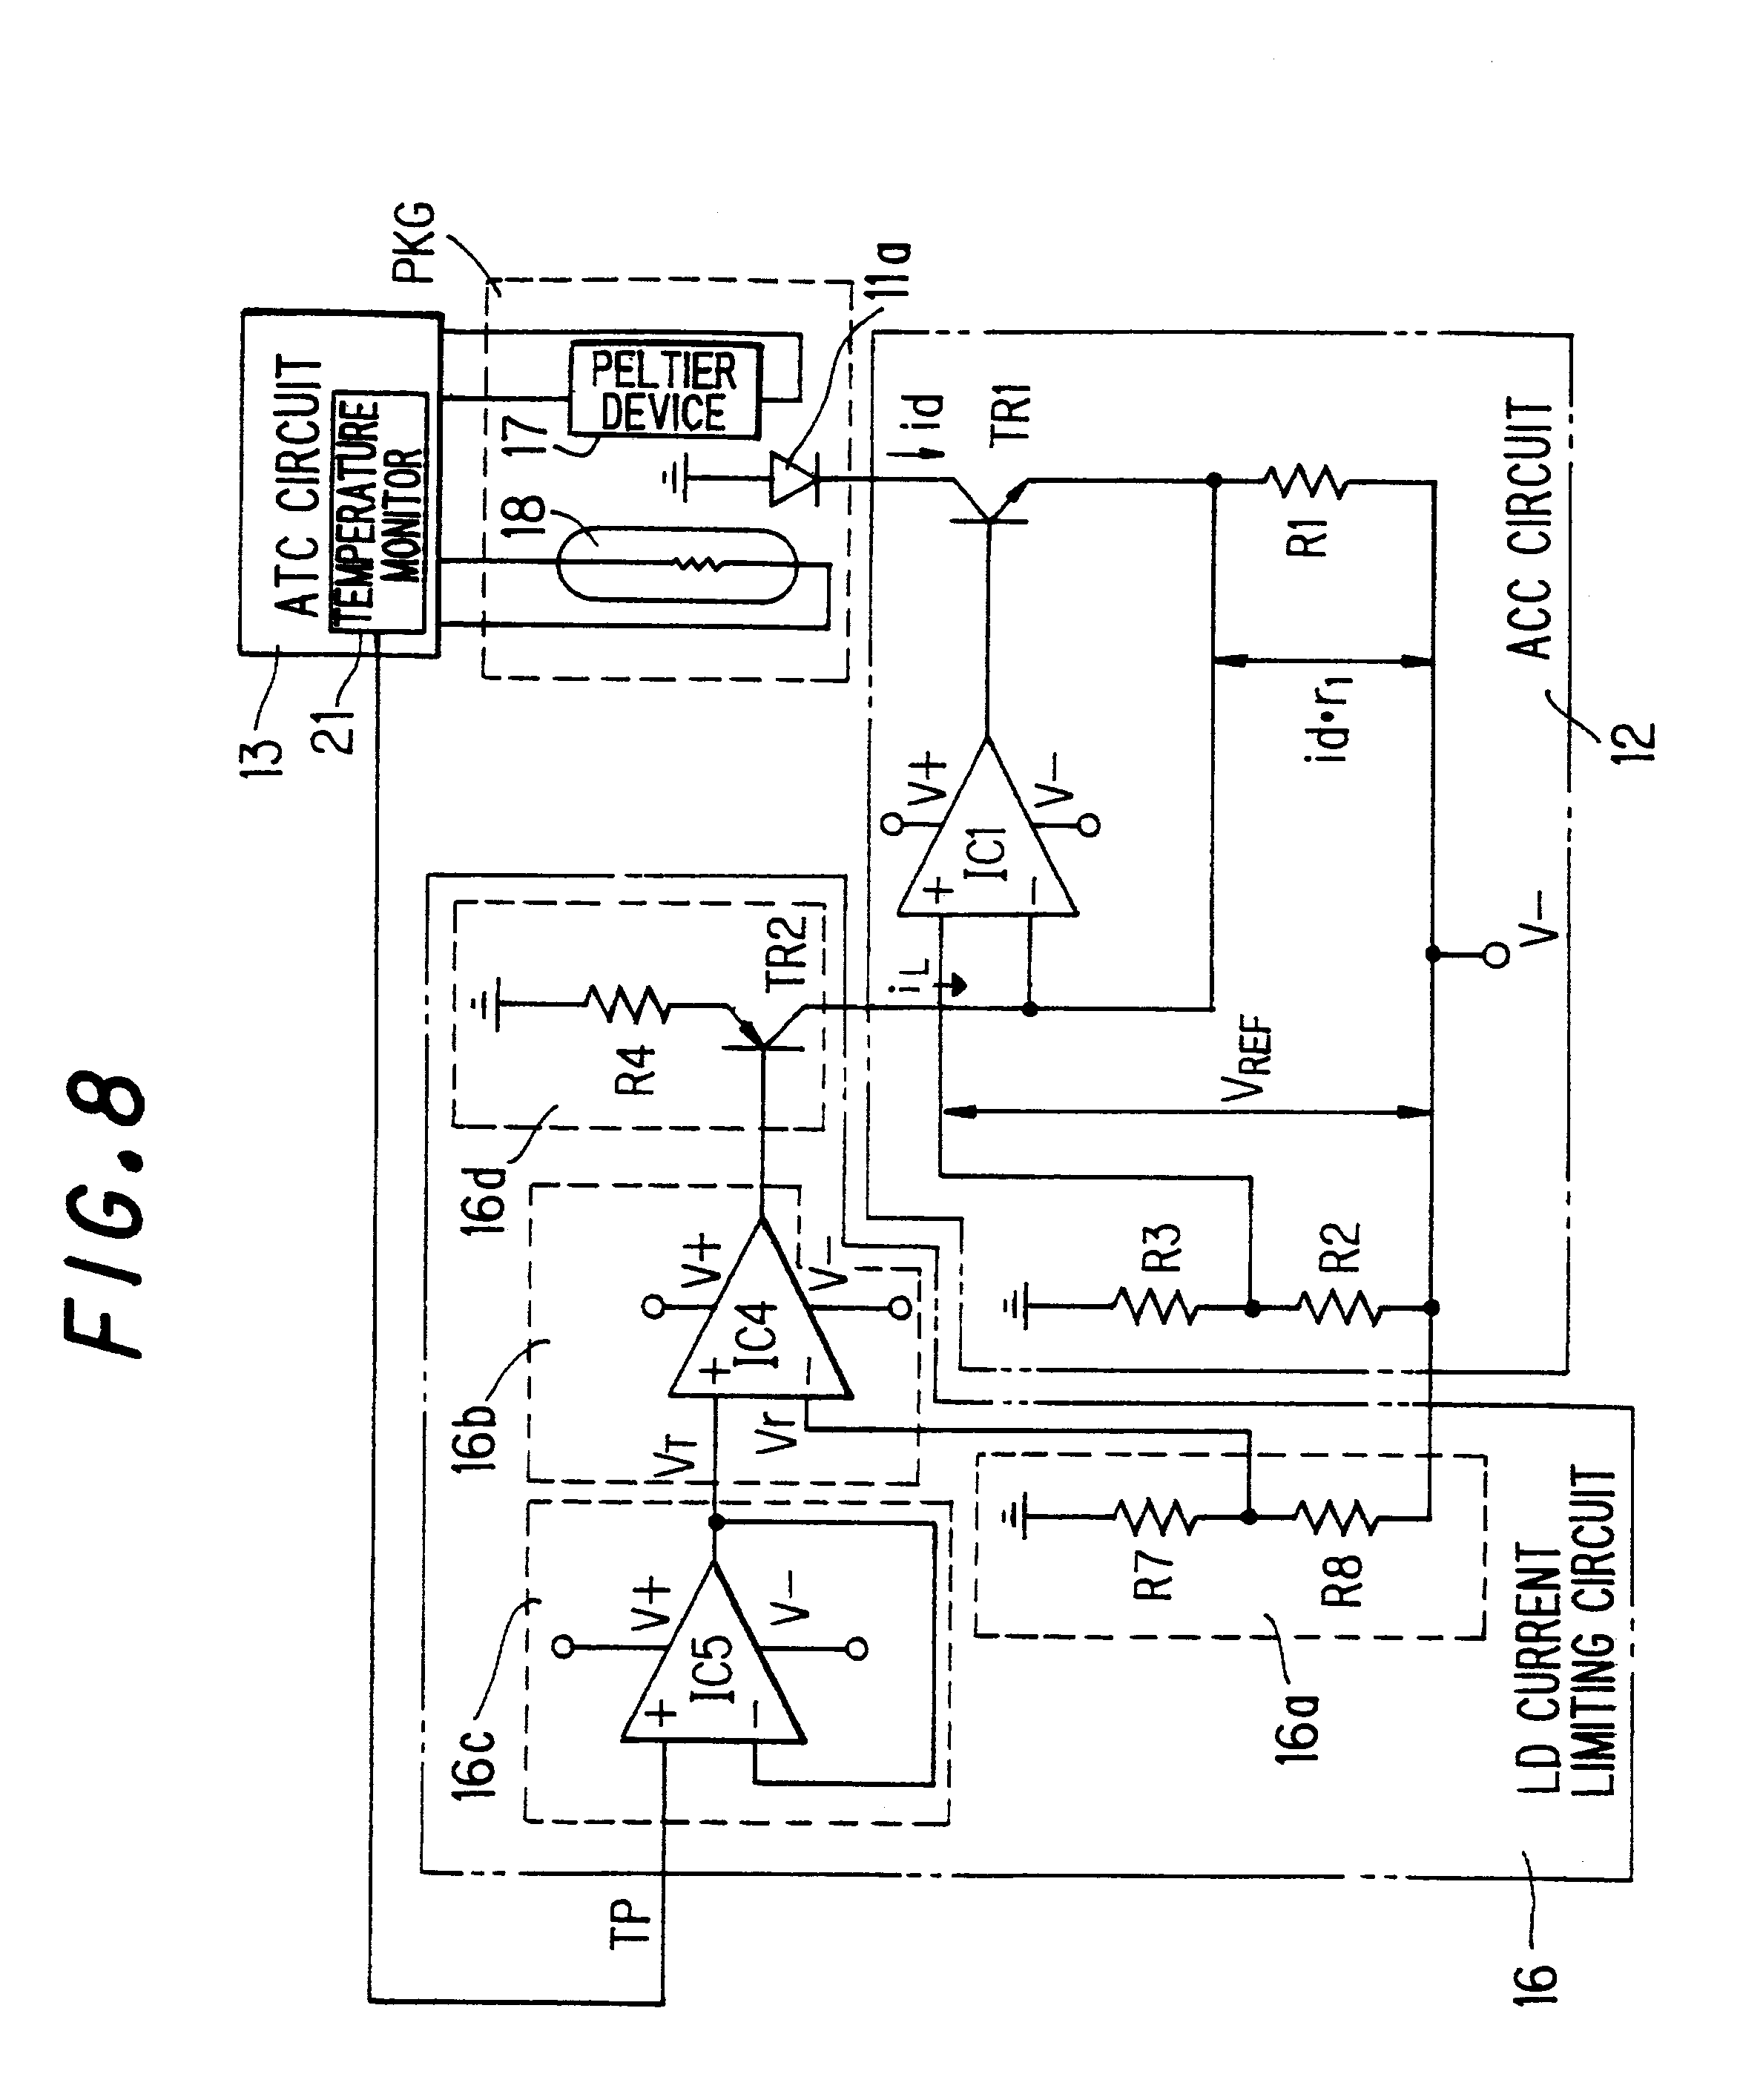 Laser Current Control Circuit Best Electrical Wiring Diagram Example Wld3343 In Constant Mode With A Type Patent Us6229833 Diode Protecting And Vicor